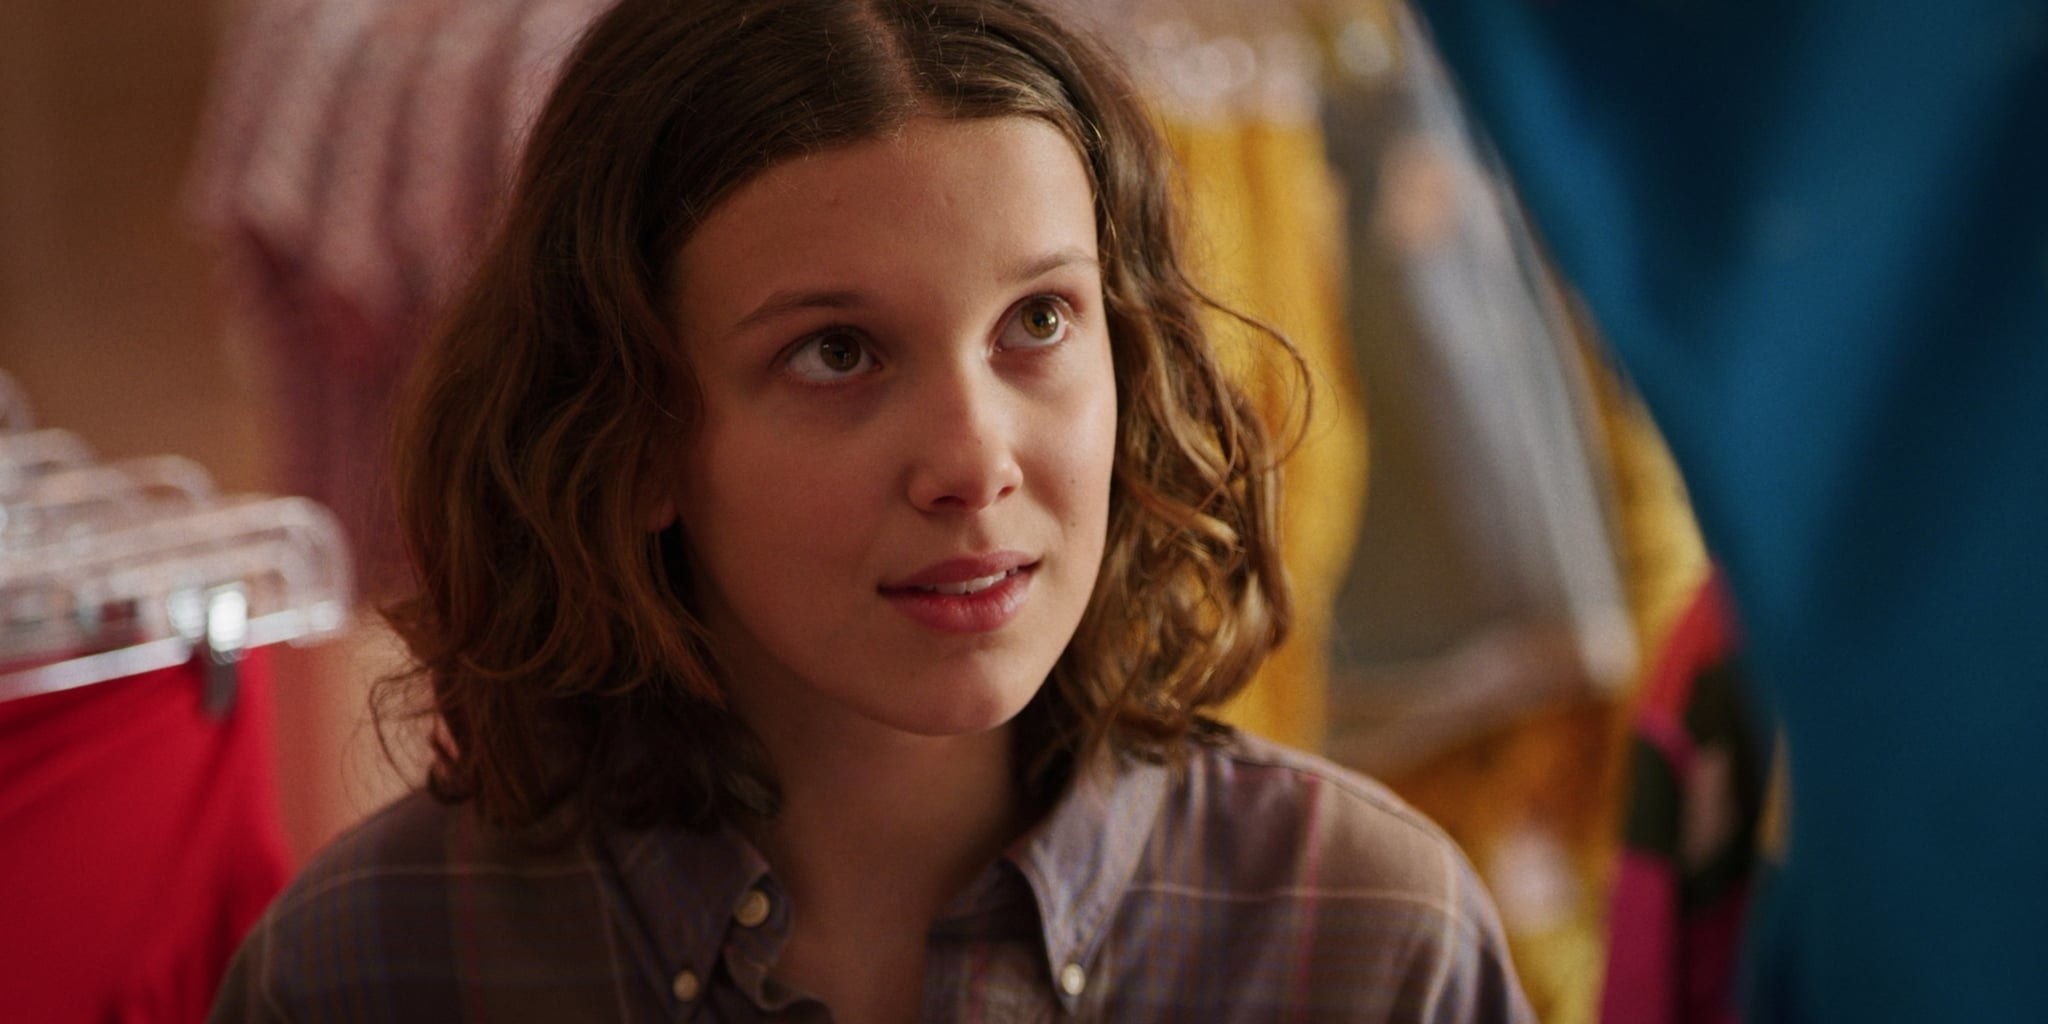 Eleven in a clothing store